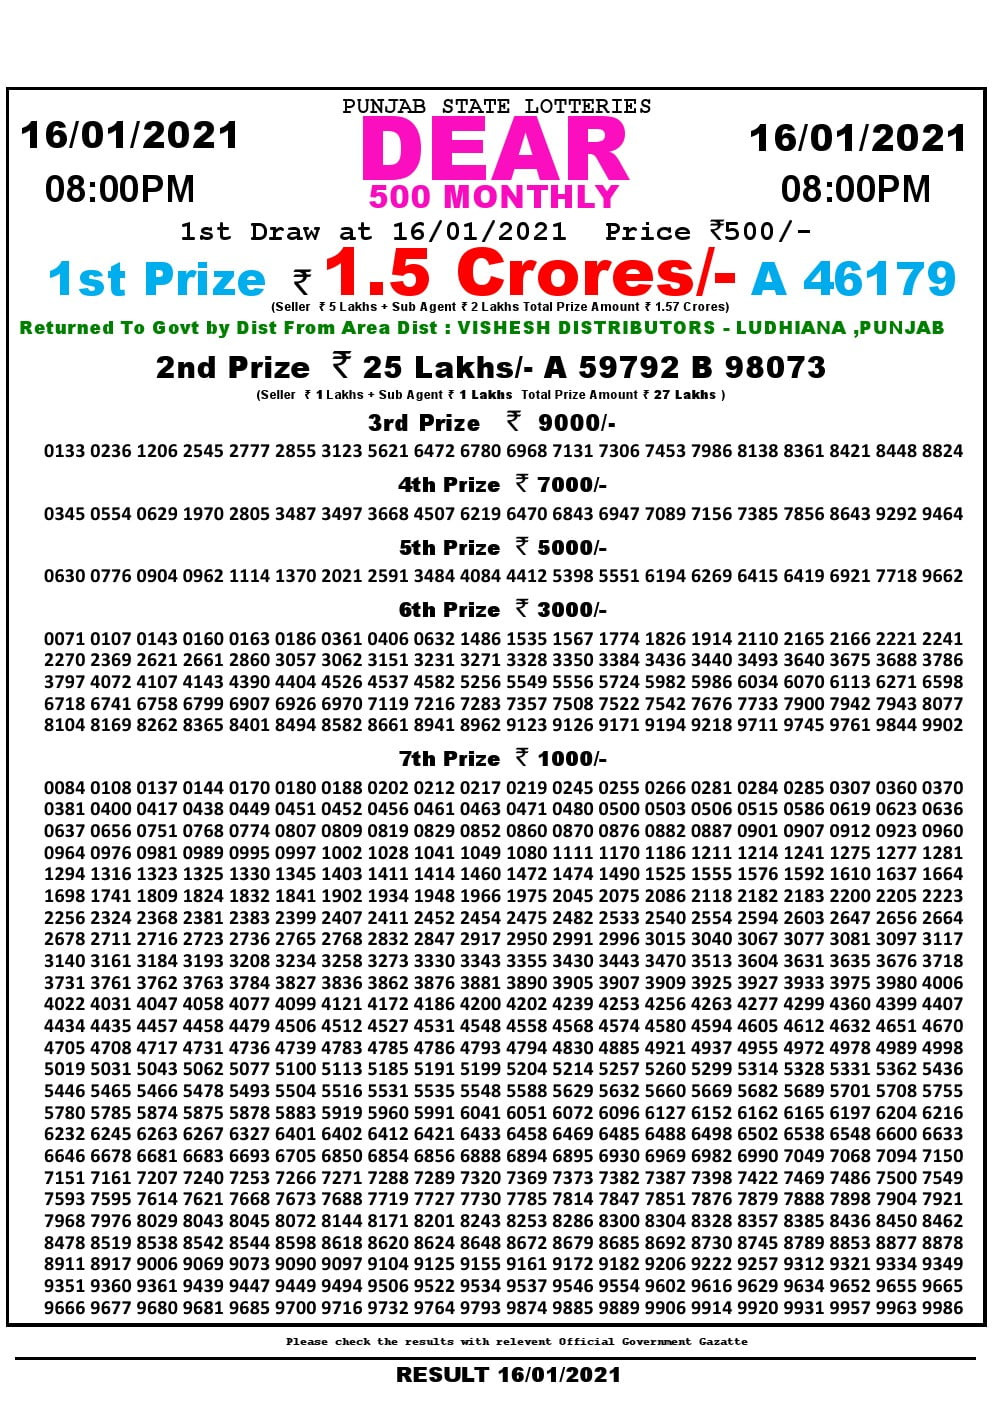 Punjab Dear Monthly 8pm lottery result today 16/01/2021